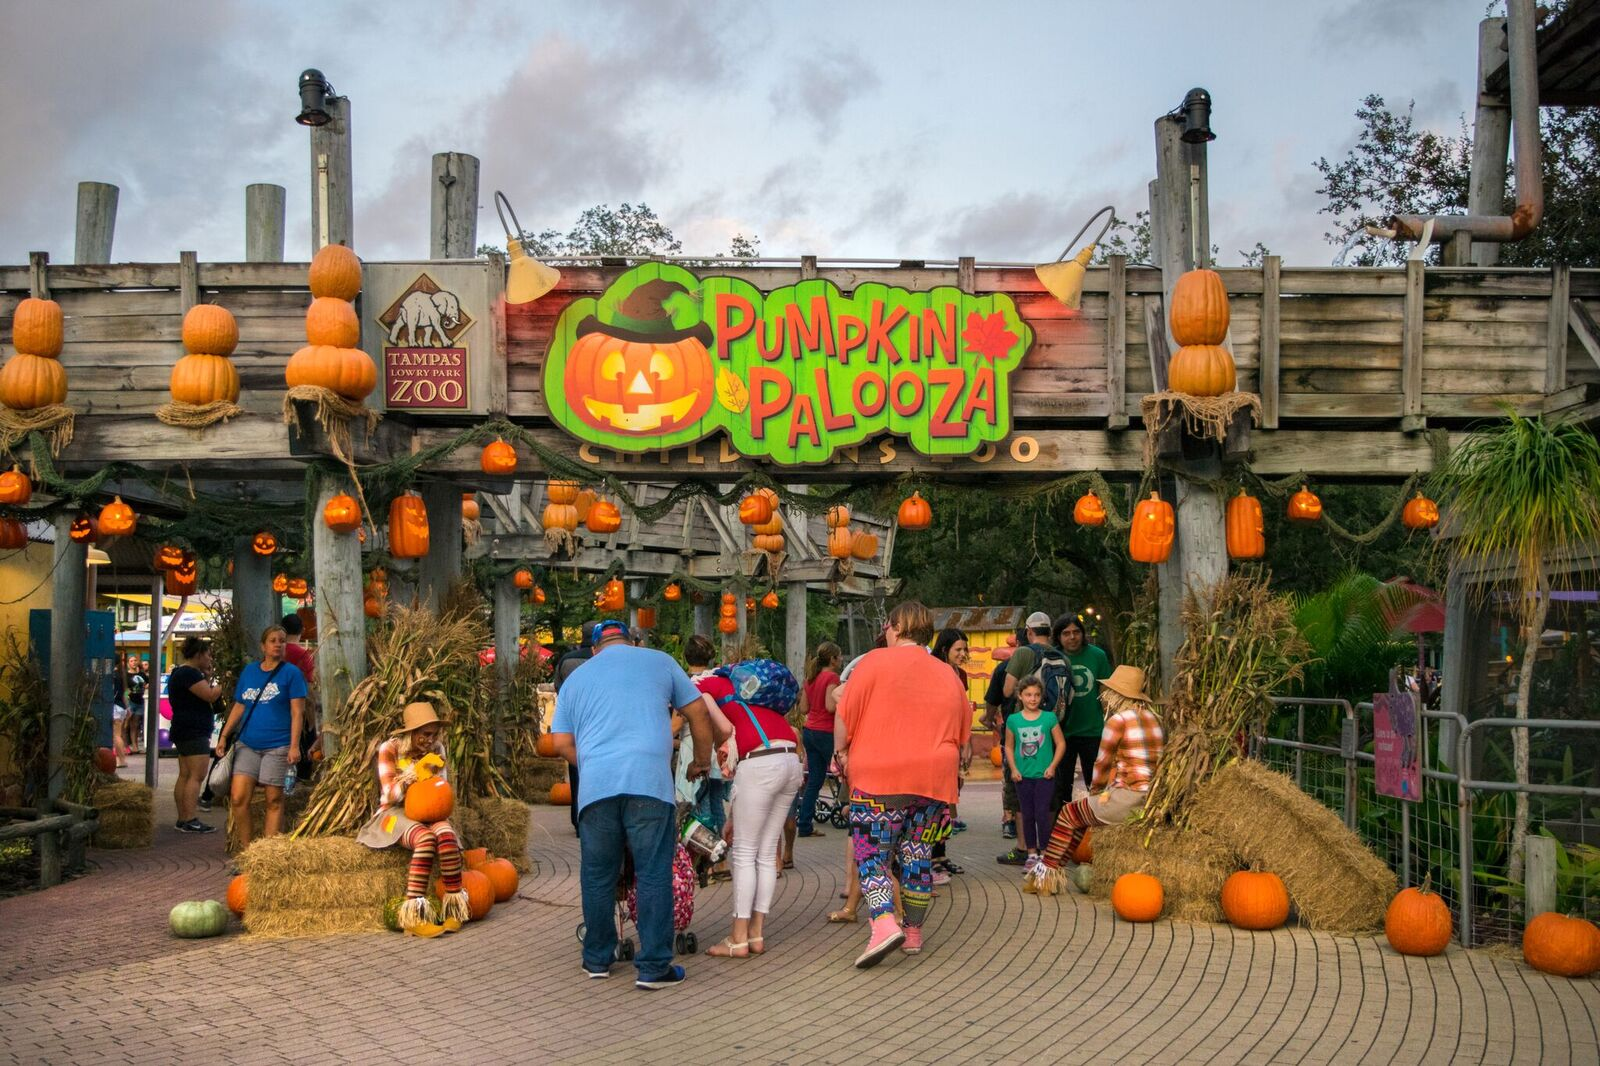 Halloween Tampa 2020 Largo Mall Tampa Bay Halloween parties, haunted houses and events this week